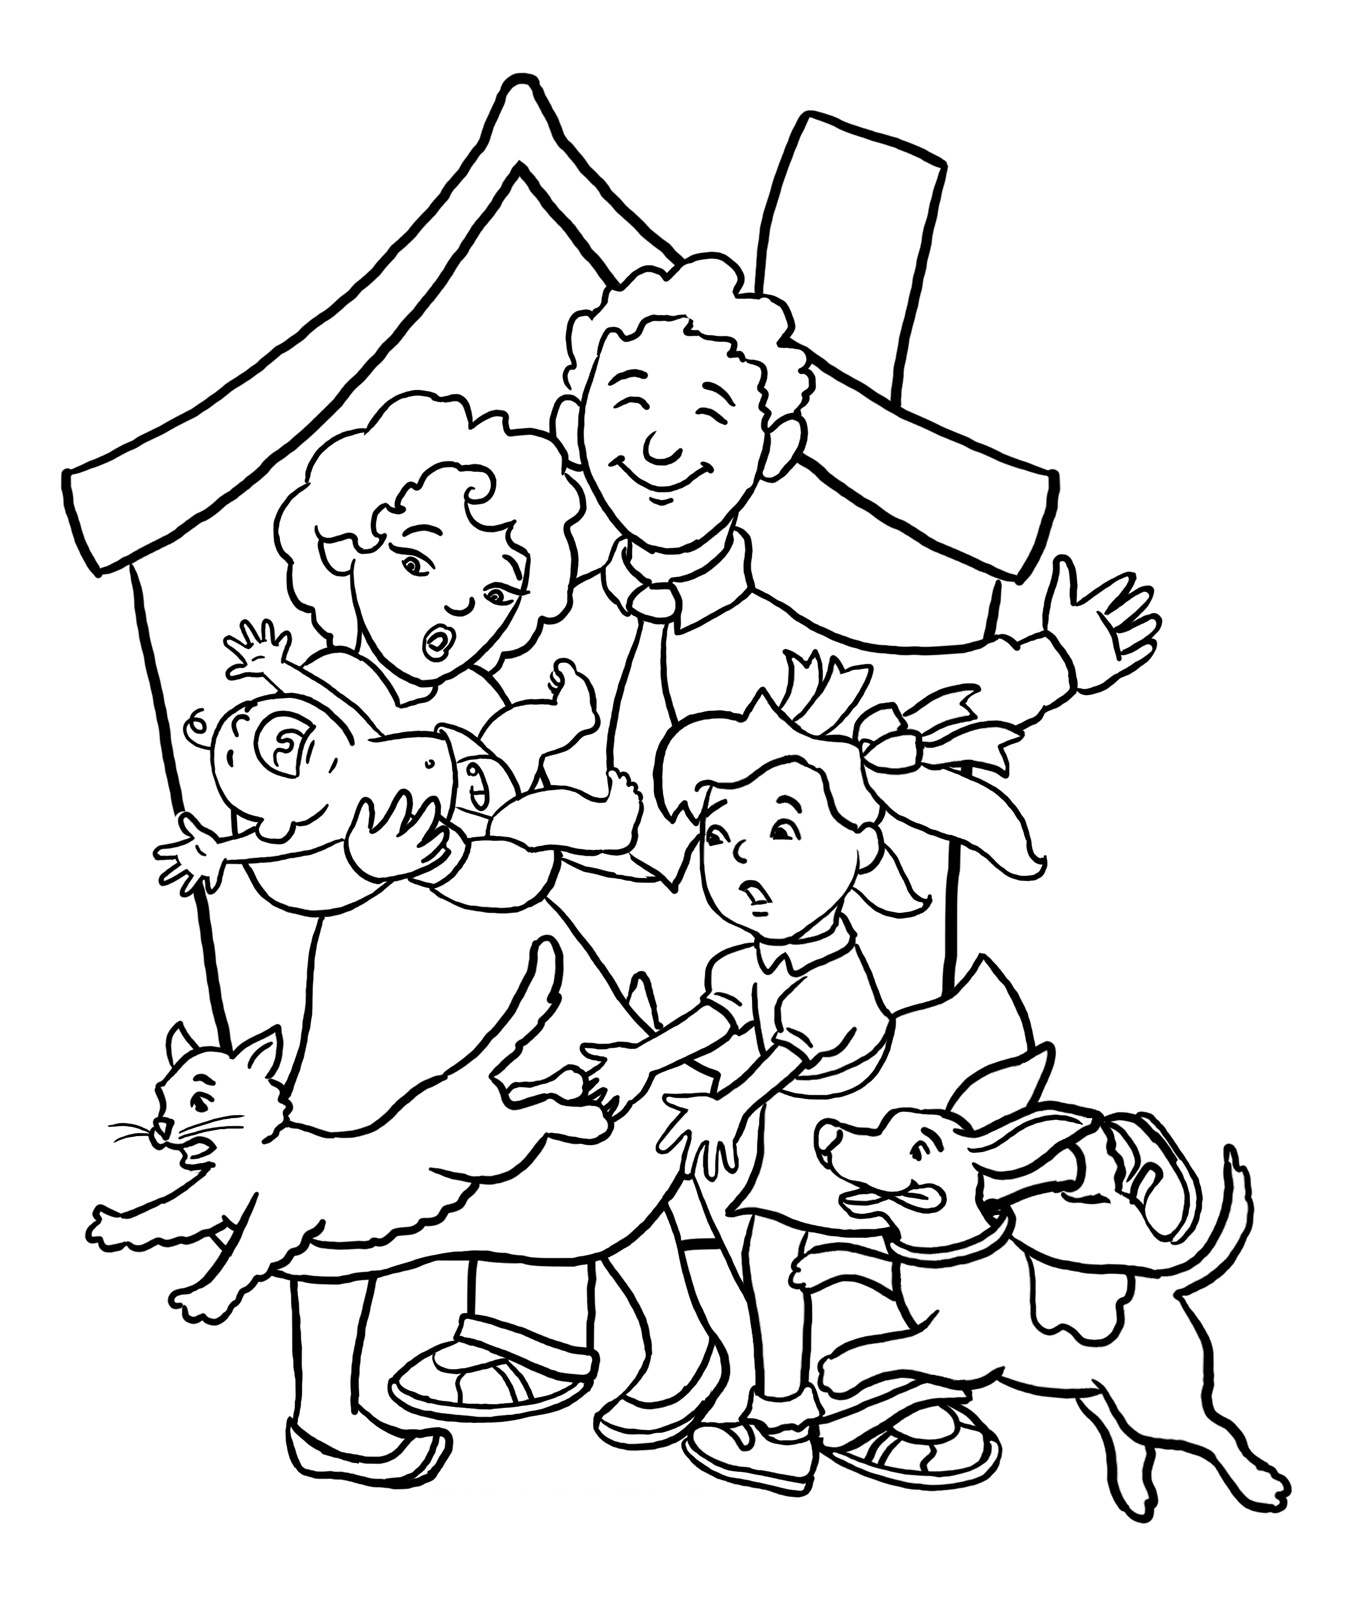 family coloring sheets family coloring pages coloring pages to download and print coloring sheets family